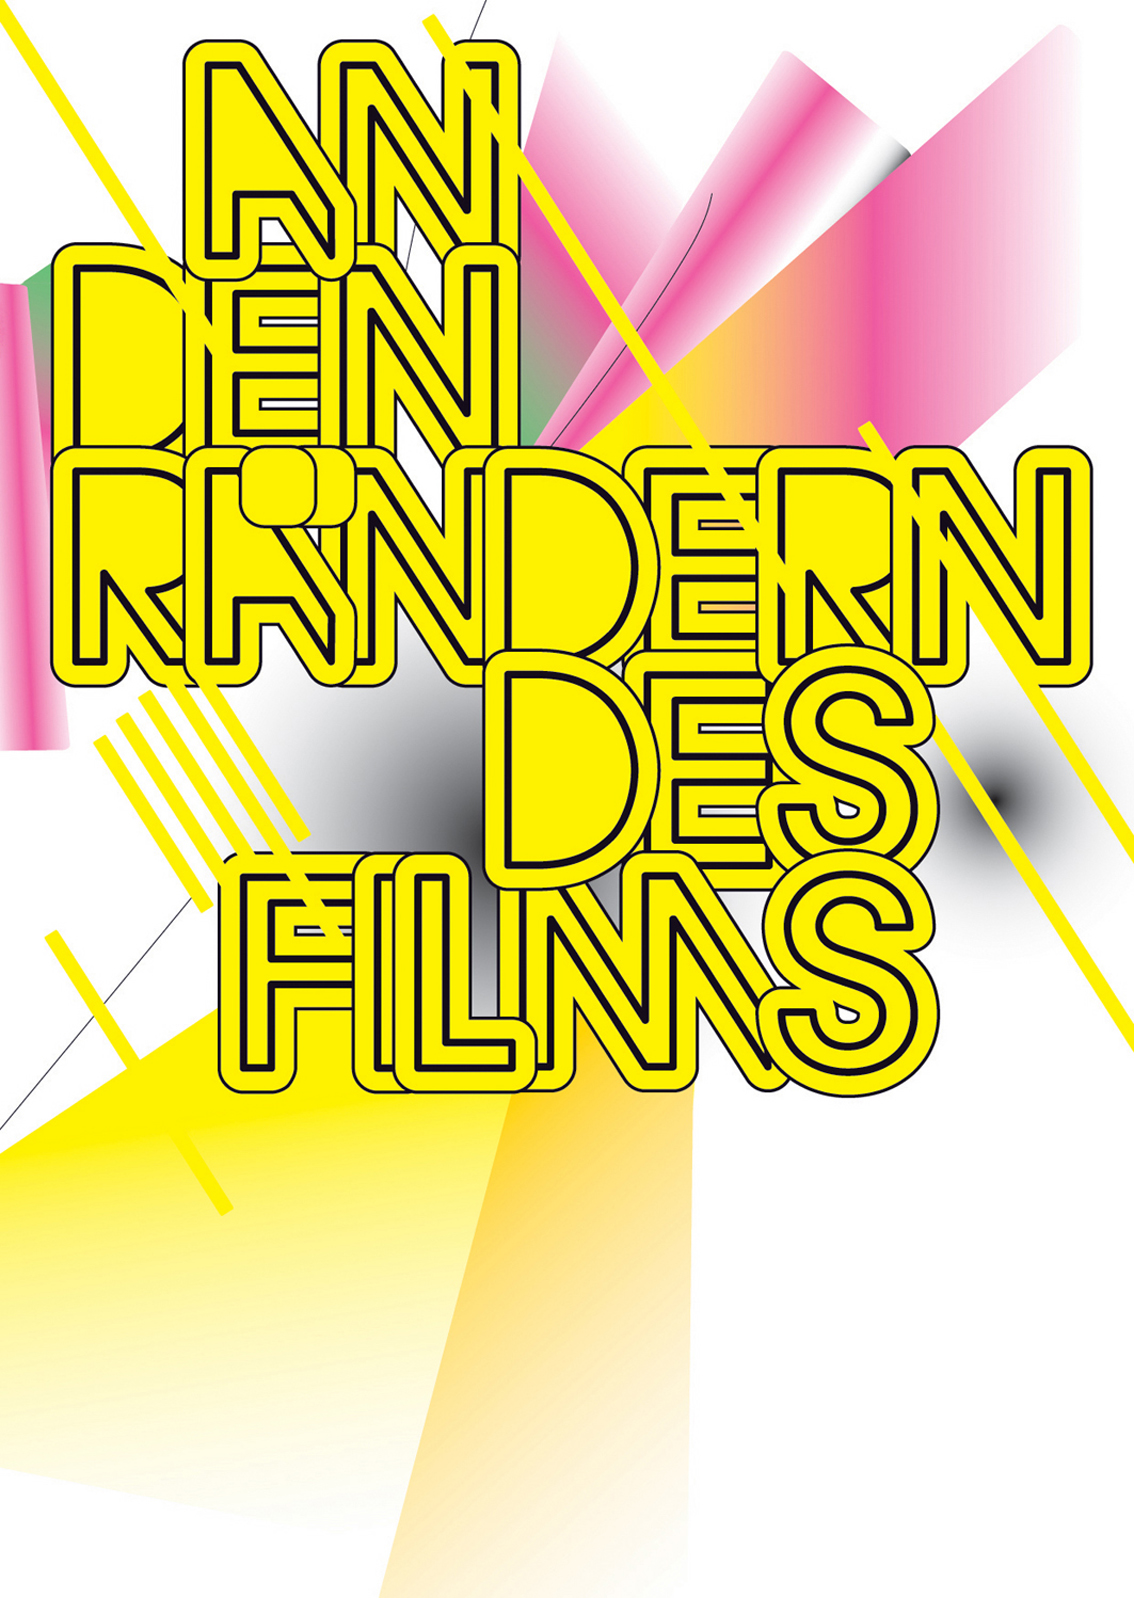 fluctuating images On the Margins of Film (An den Raendern des Films)